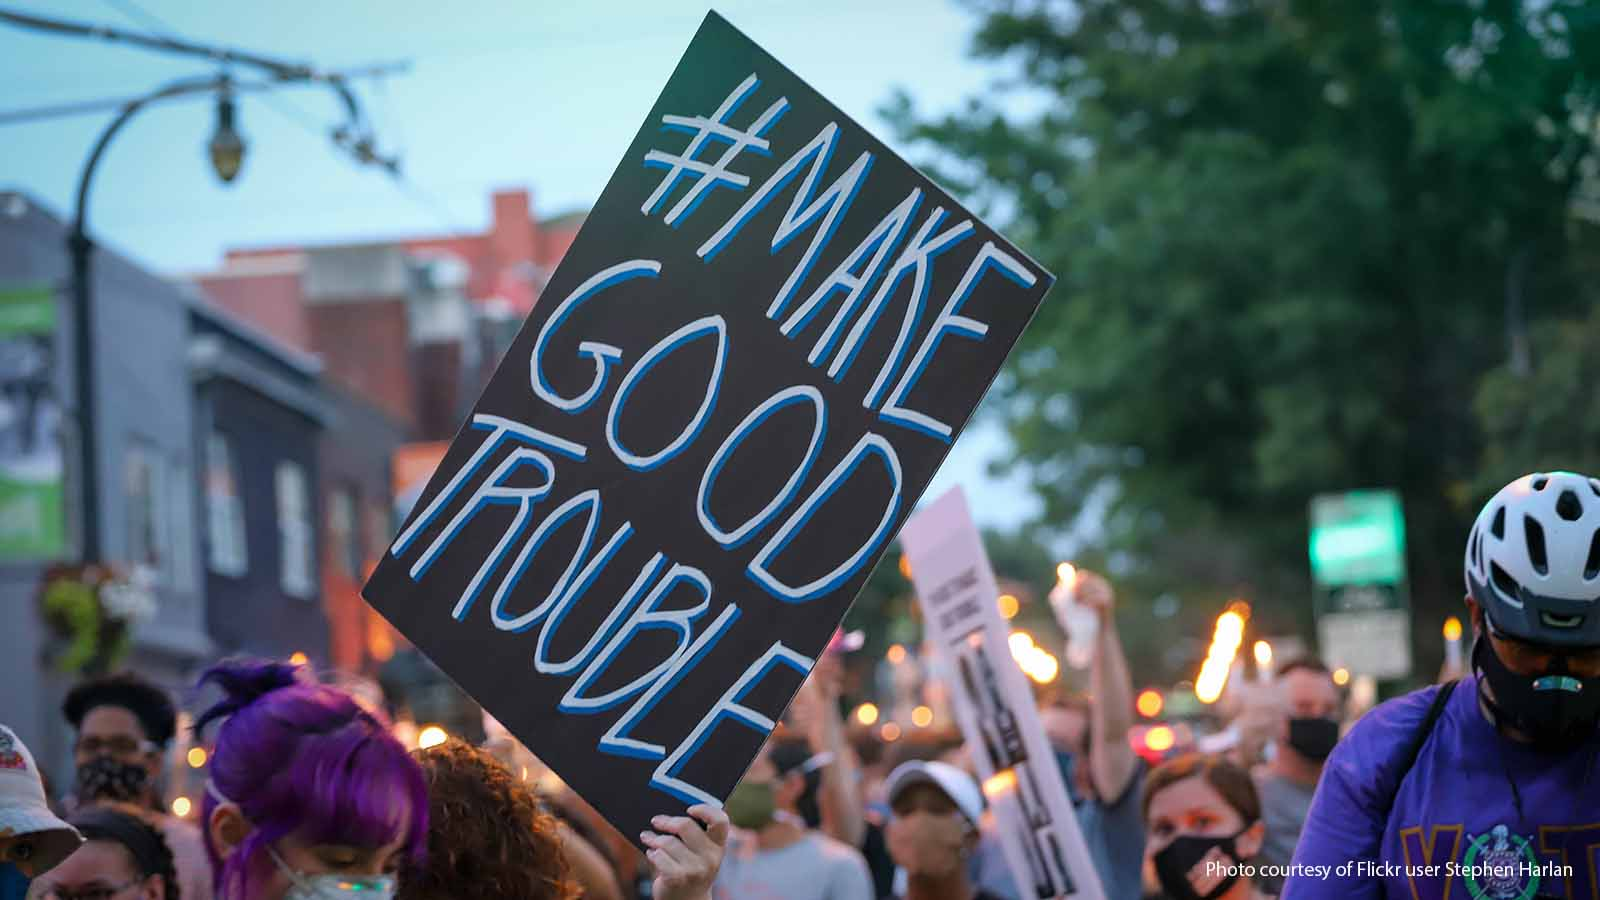 #Make Good Trouble sign at a vigil for Fmr. Rep. John Lewis in July 2020.